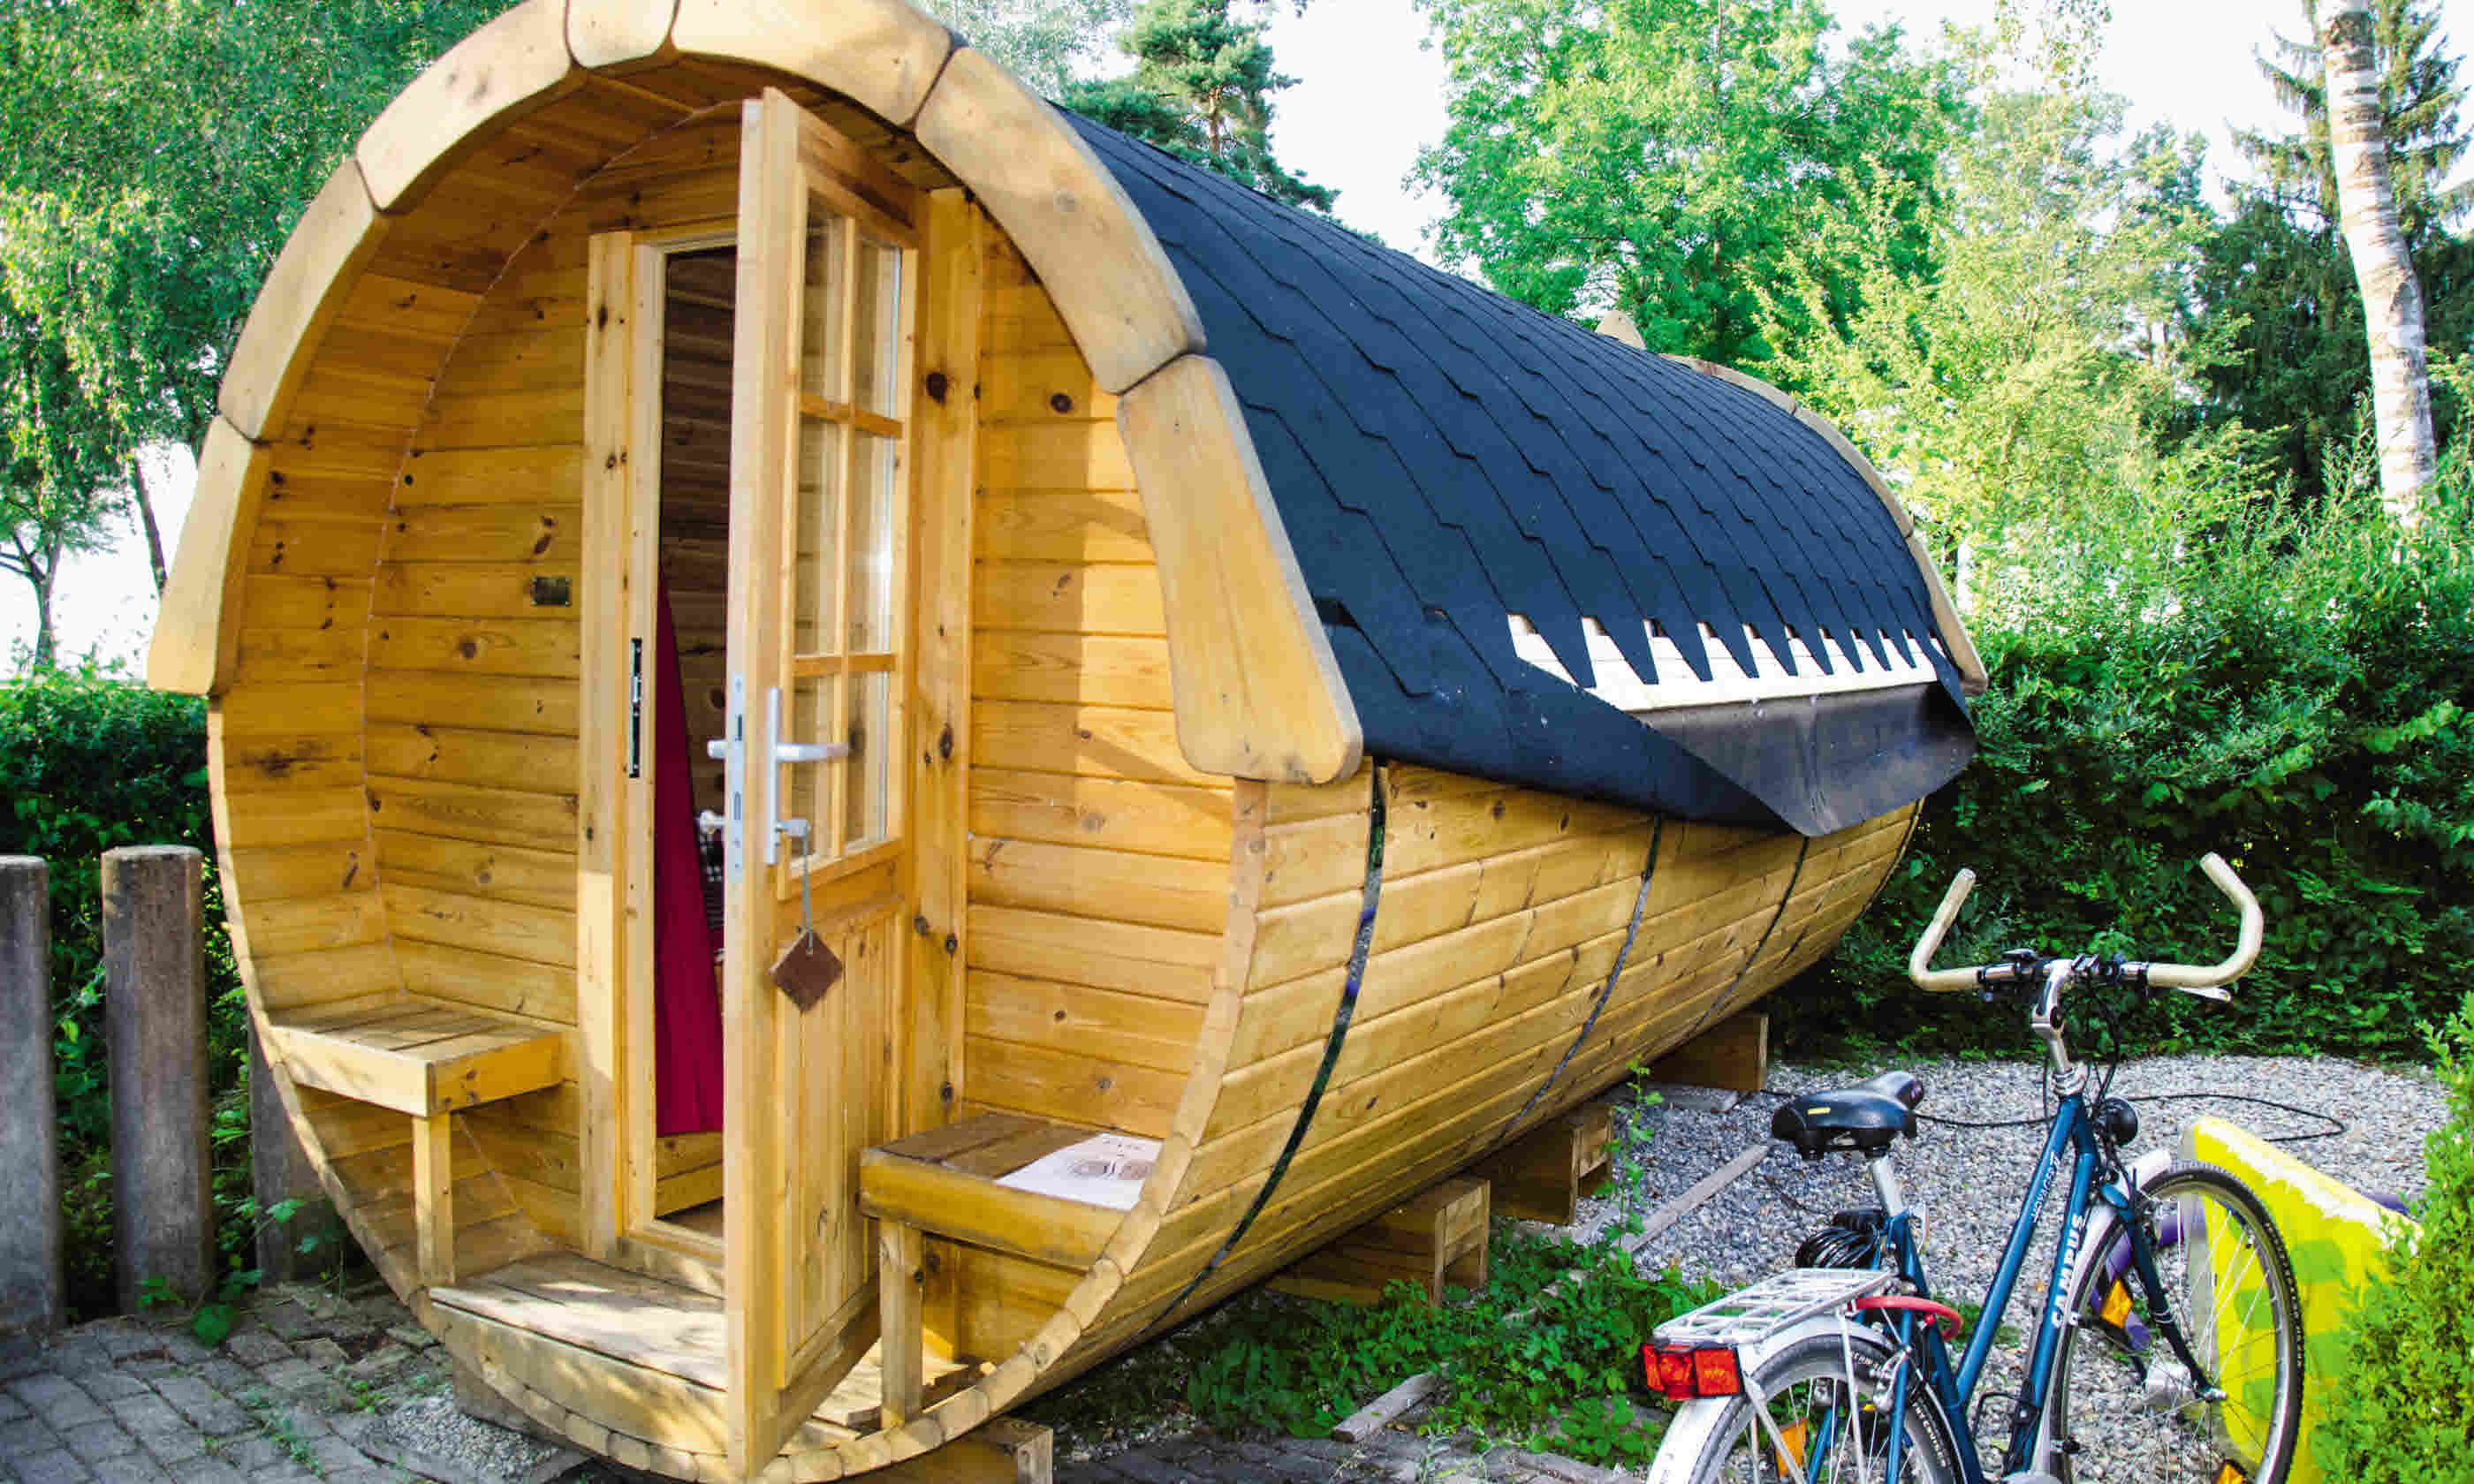 The wine barrel glamping pods at Klausenhorn Campsite (Neil S Price)